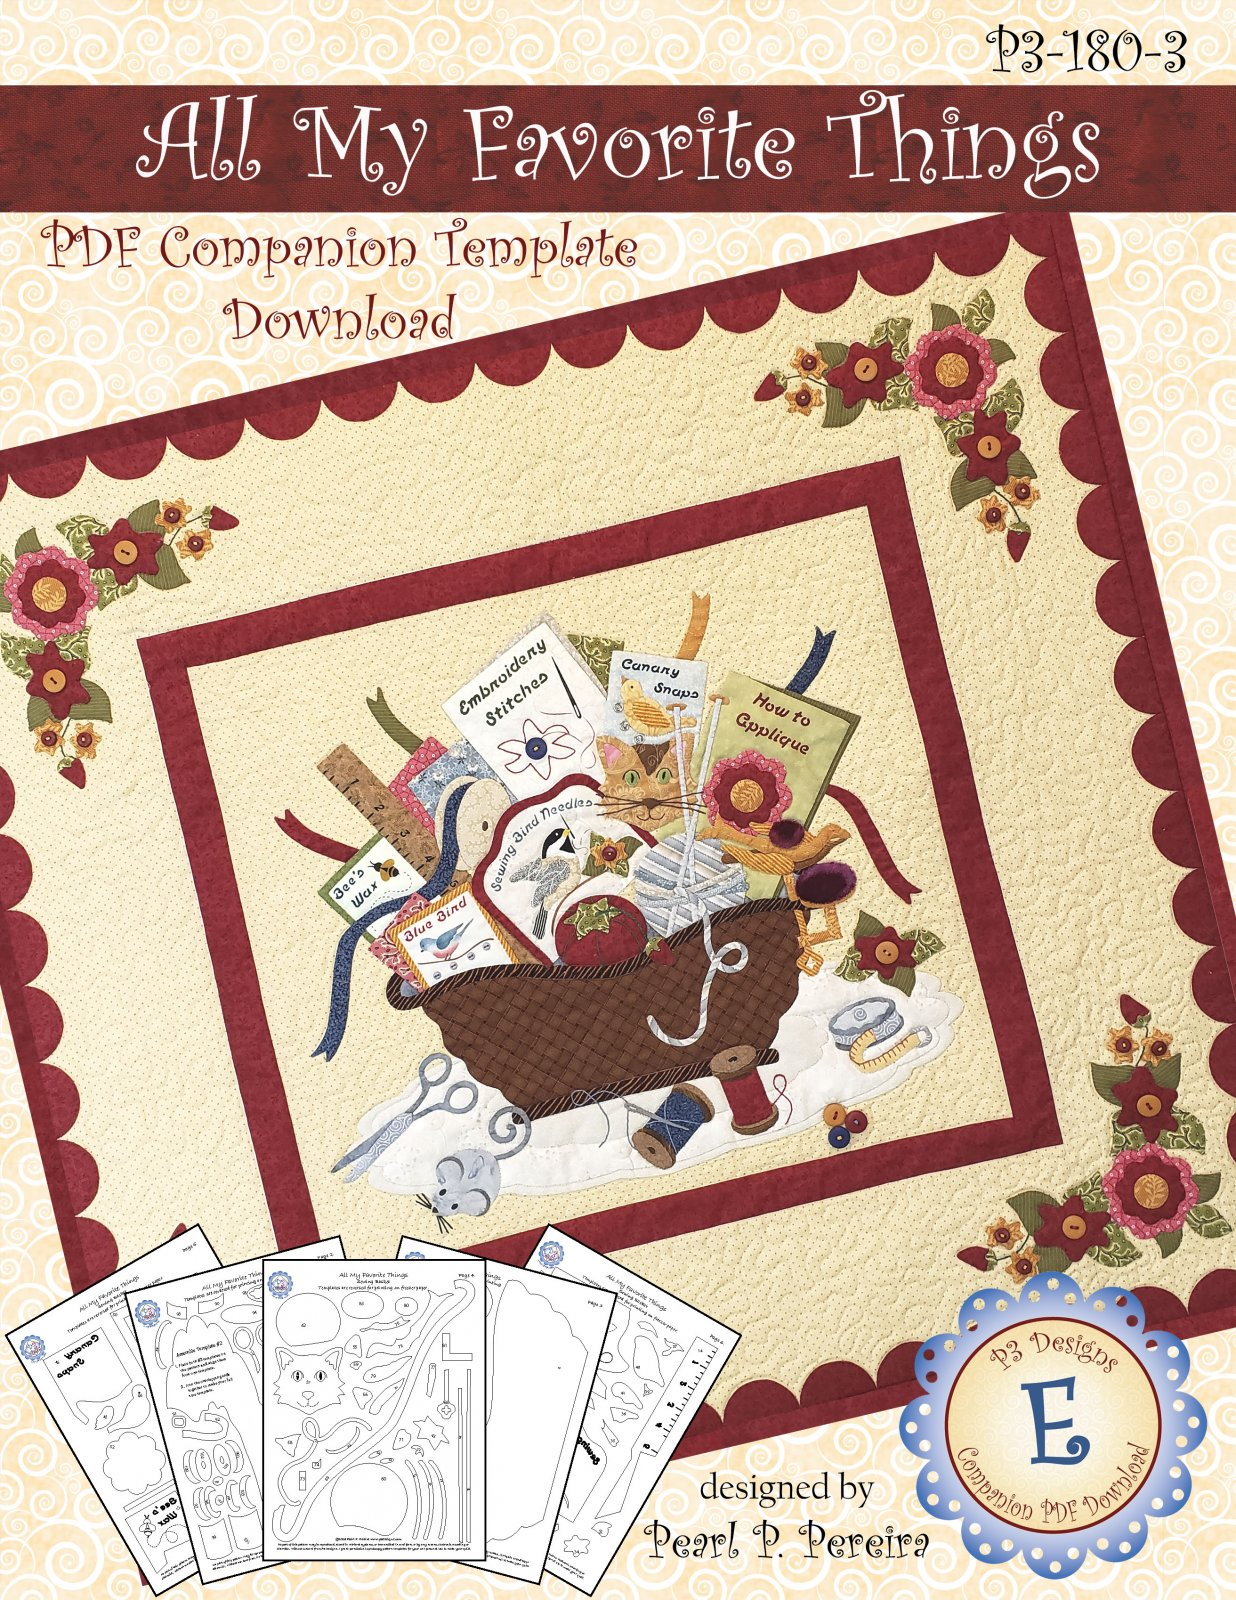 P3-180-3 All My Favorite Things - Companion PDF Template Download